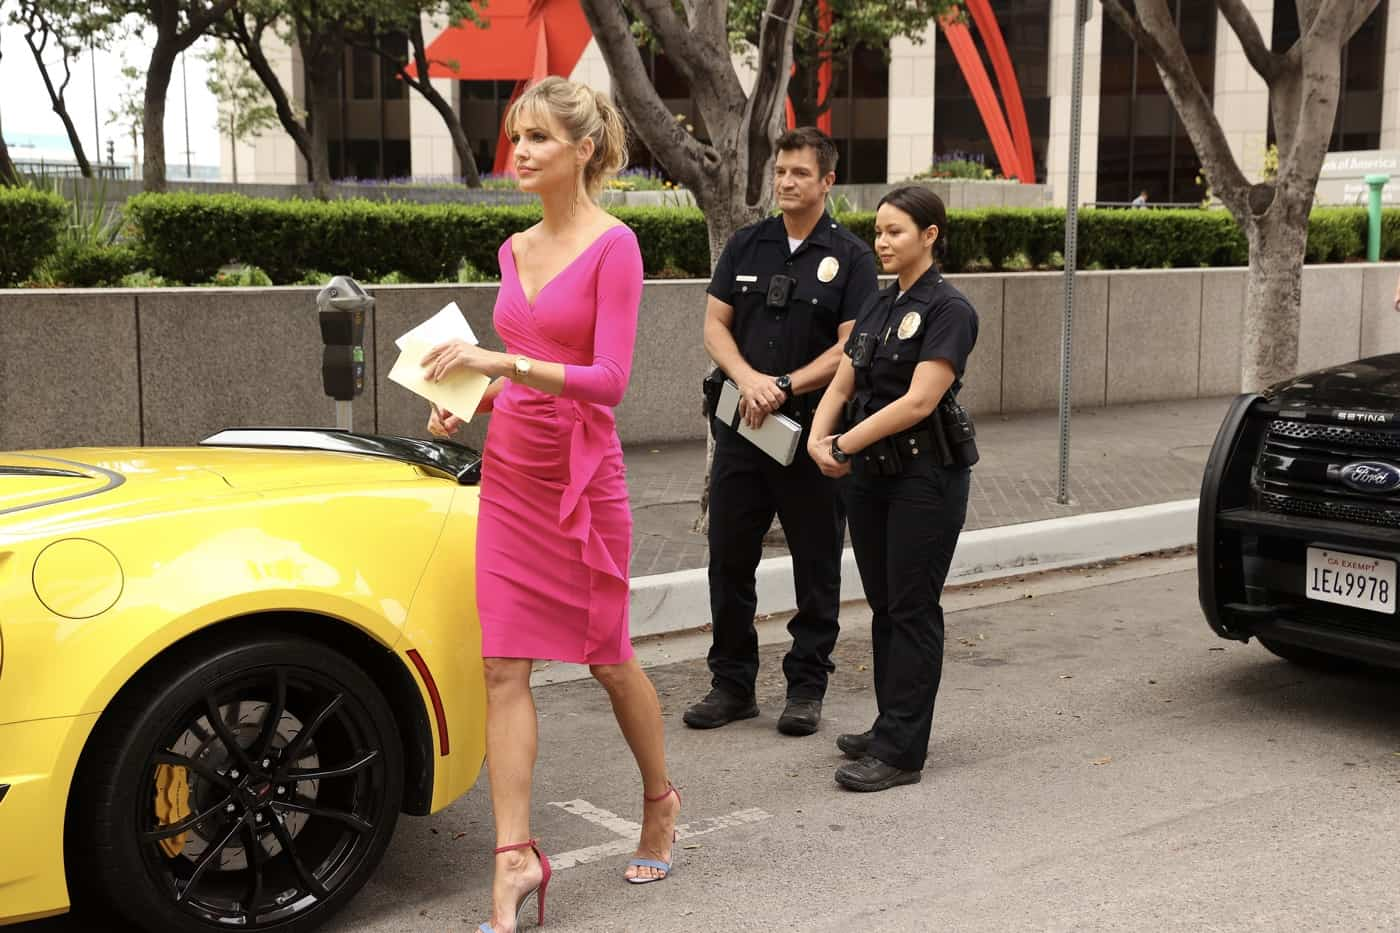 """THE ROOKIE Season 4 Episode 2 - """"Five Minutes"""" – Officer Nolan and Officer Chen's run-in with an infamous thief tips them off to a potentially big heist surrounding the Getty's big gala event. Meanwhile, Nolan works up the courage to ask Bailey out on date on an all-new episode of """"The Rookie,"""" SUNDAY, OCT. 3 (10:00-11:00 p.m. EDT), on ABC. (ABC/Raymond Liu) TRICIA HELFER"""